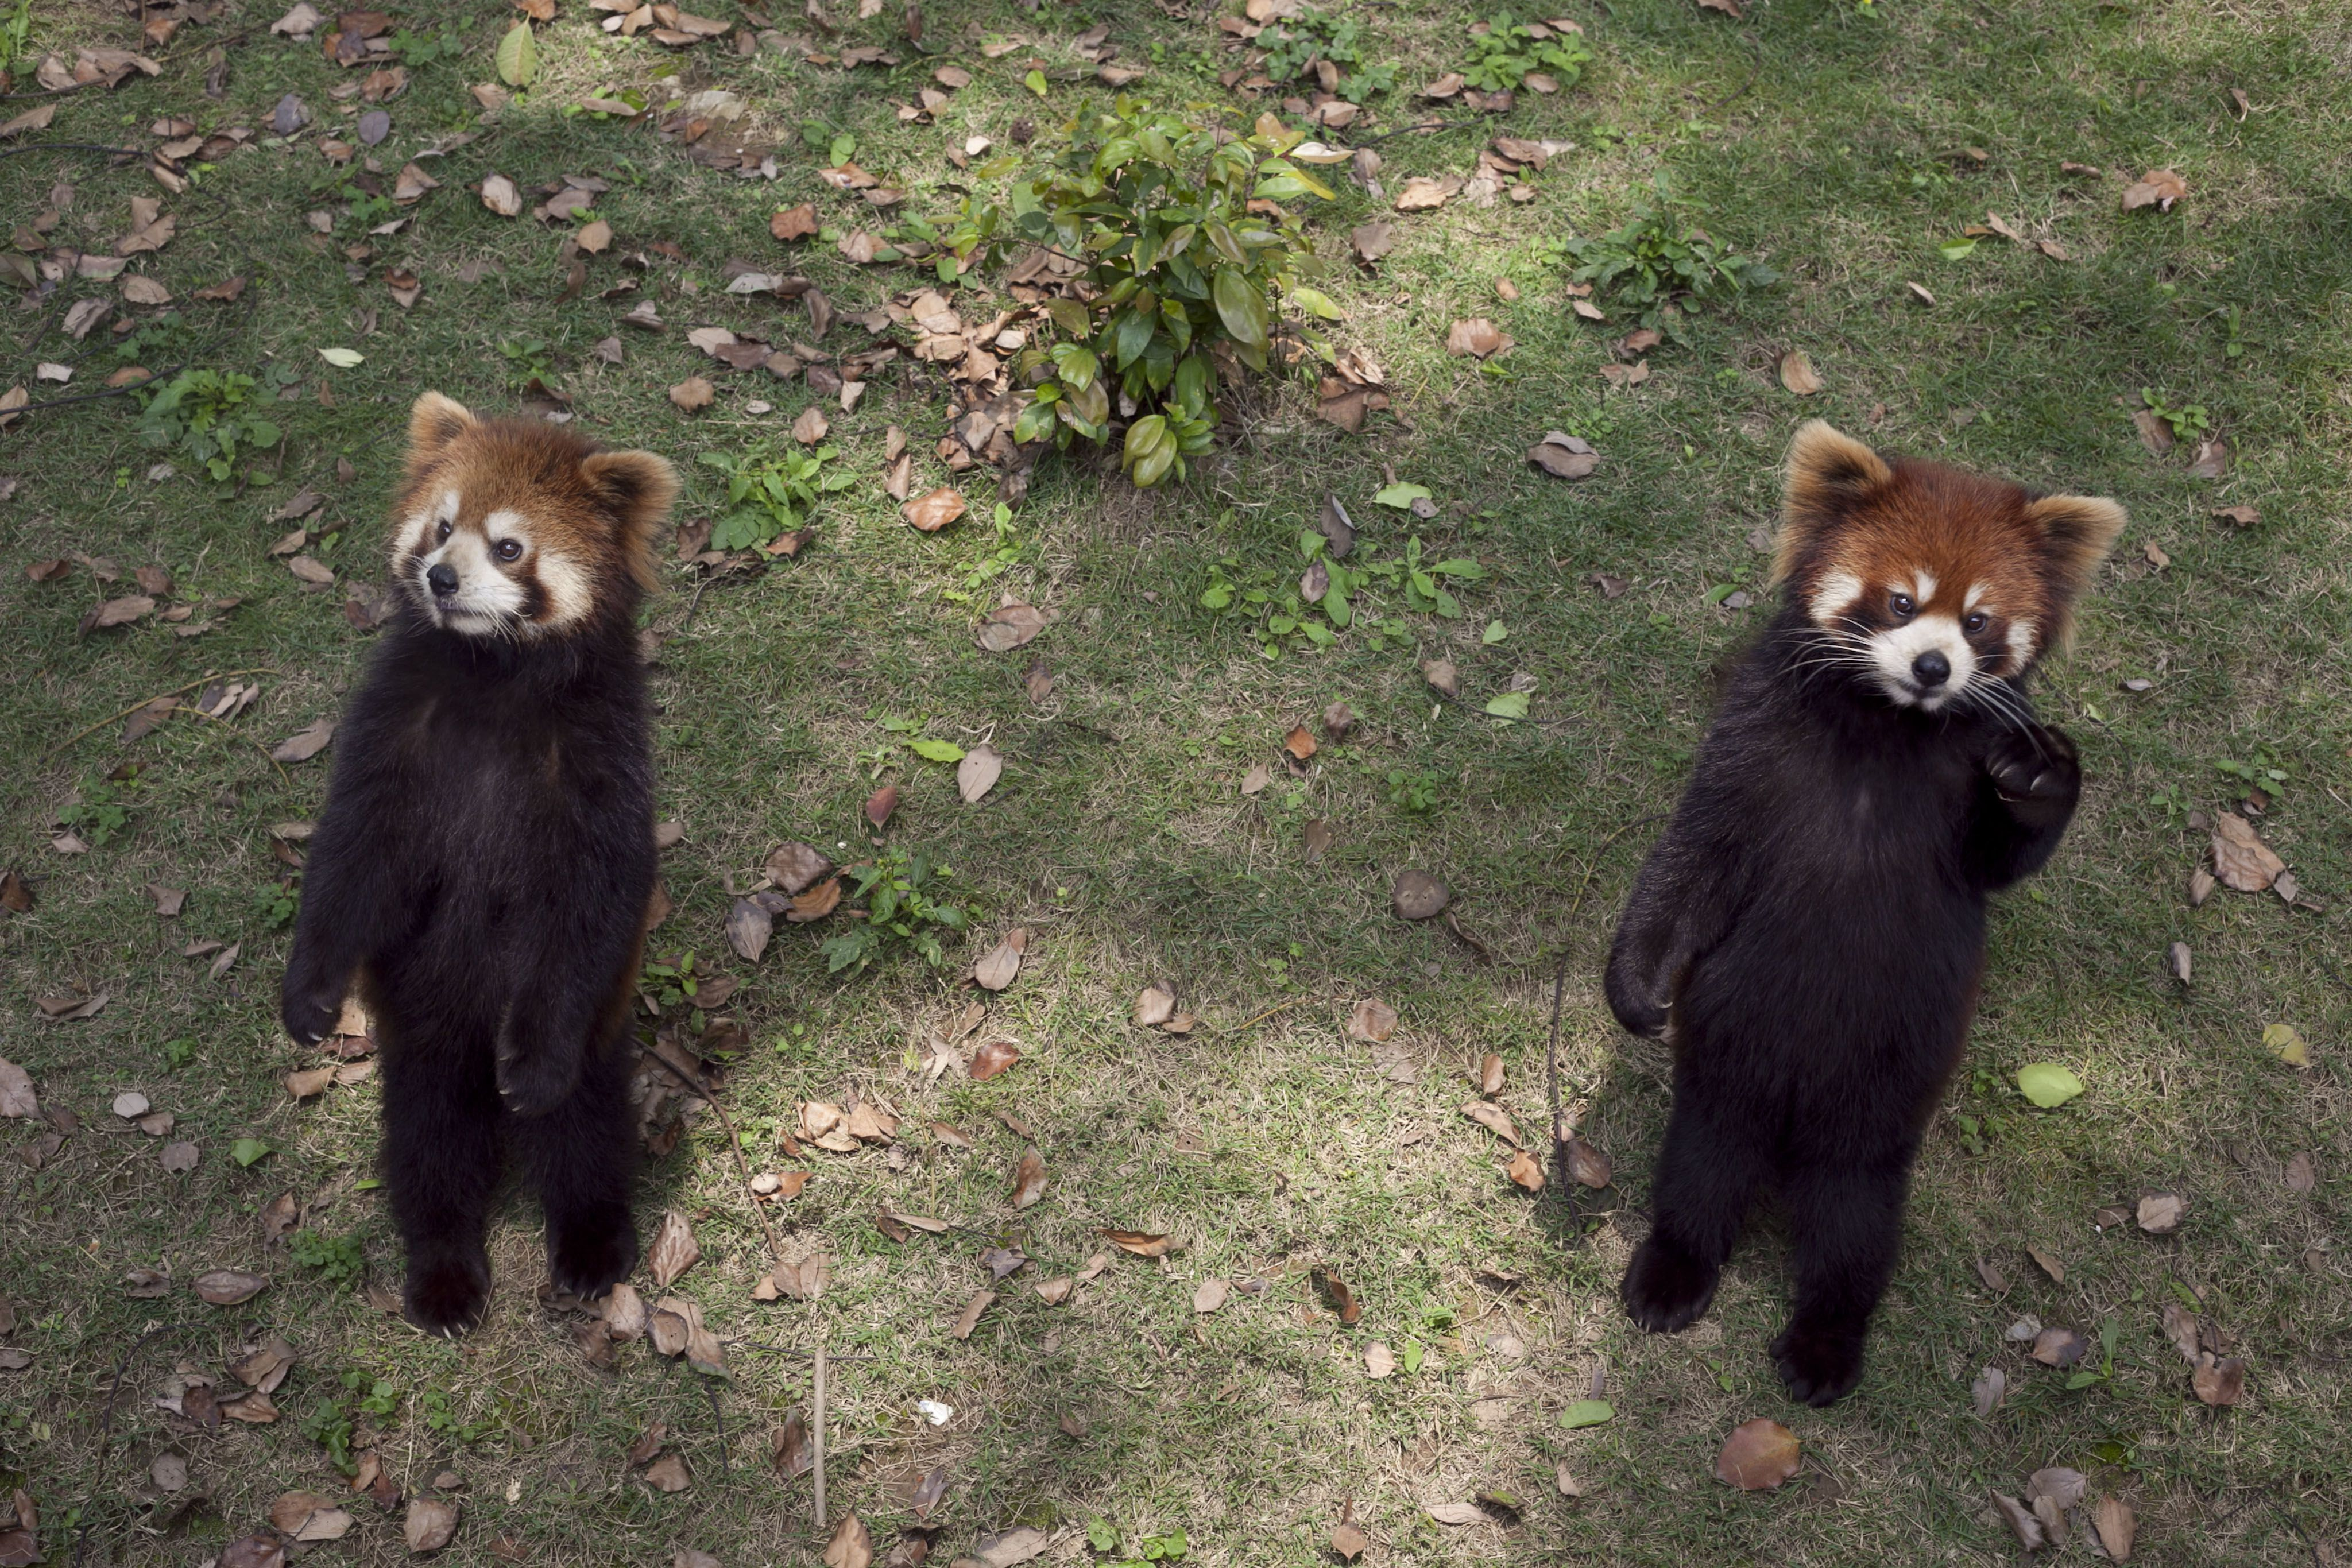 A red panda standing on its hind legs and extending its claws may look cute, but it's actually a threat behavior.